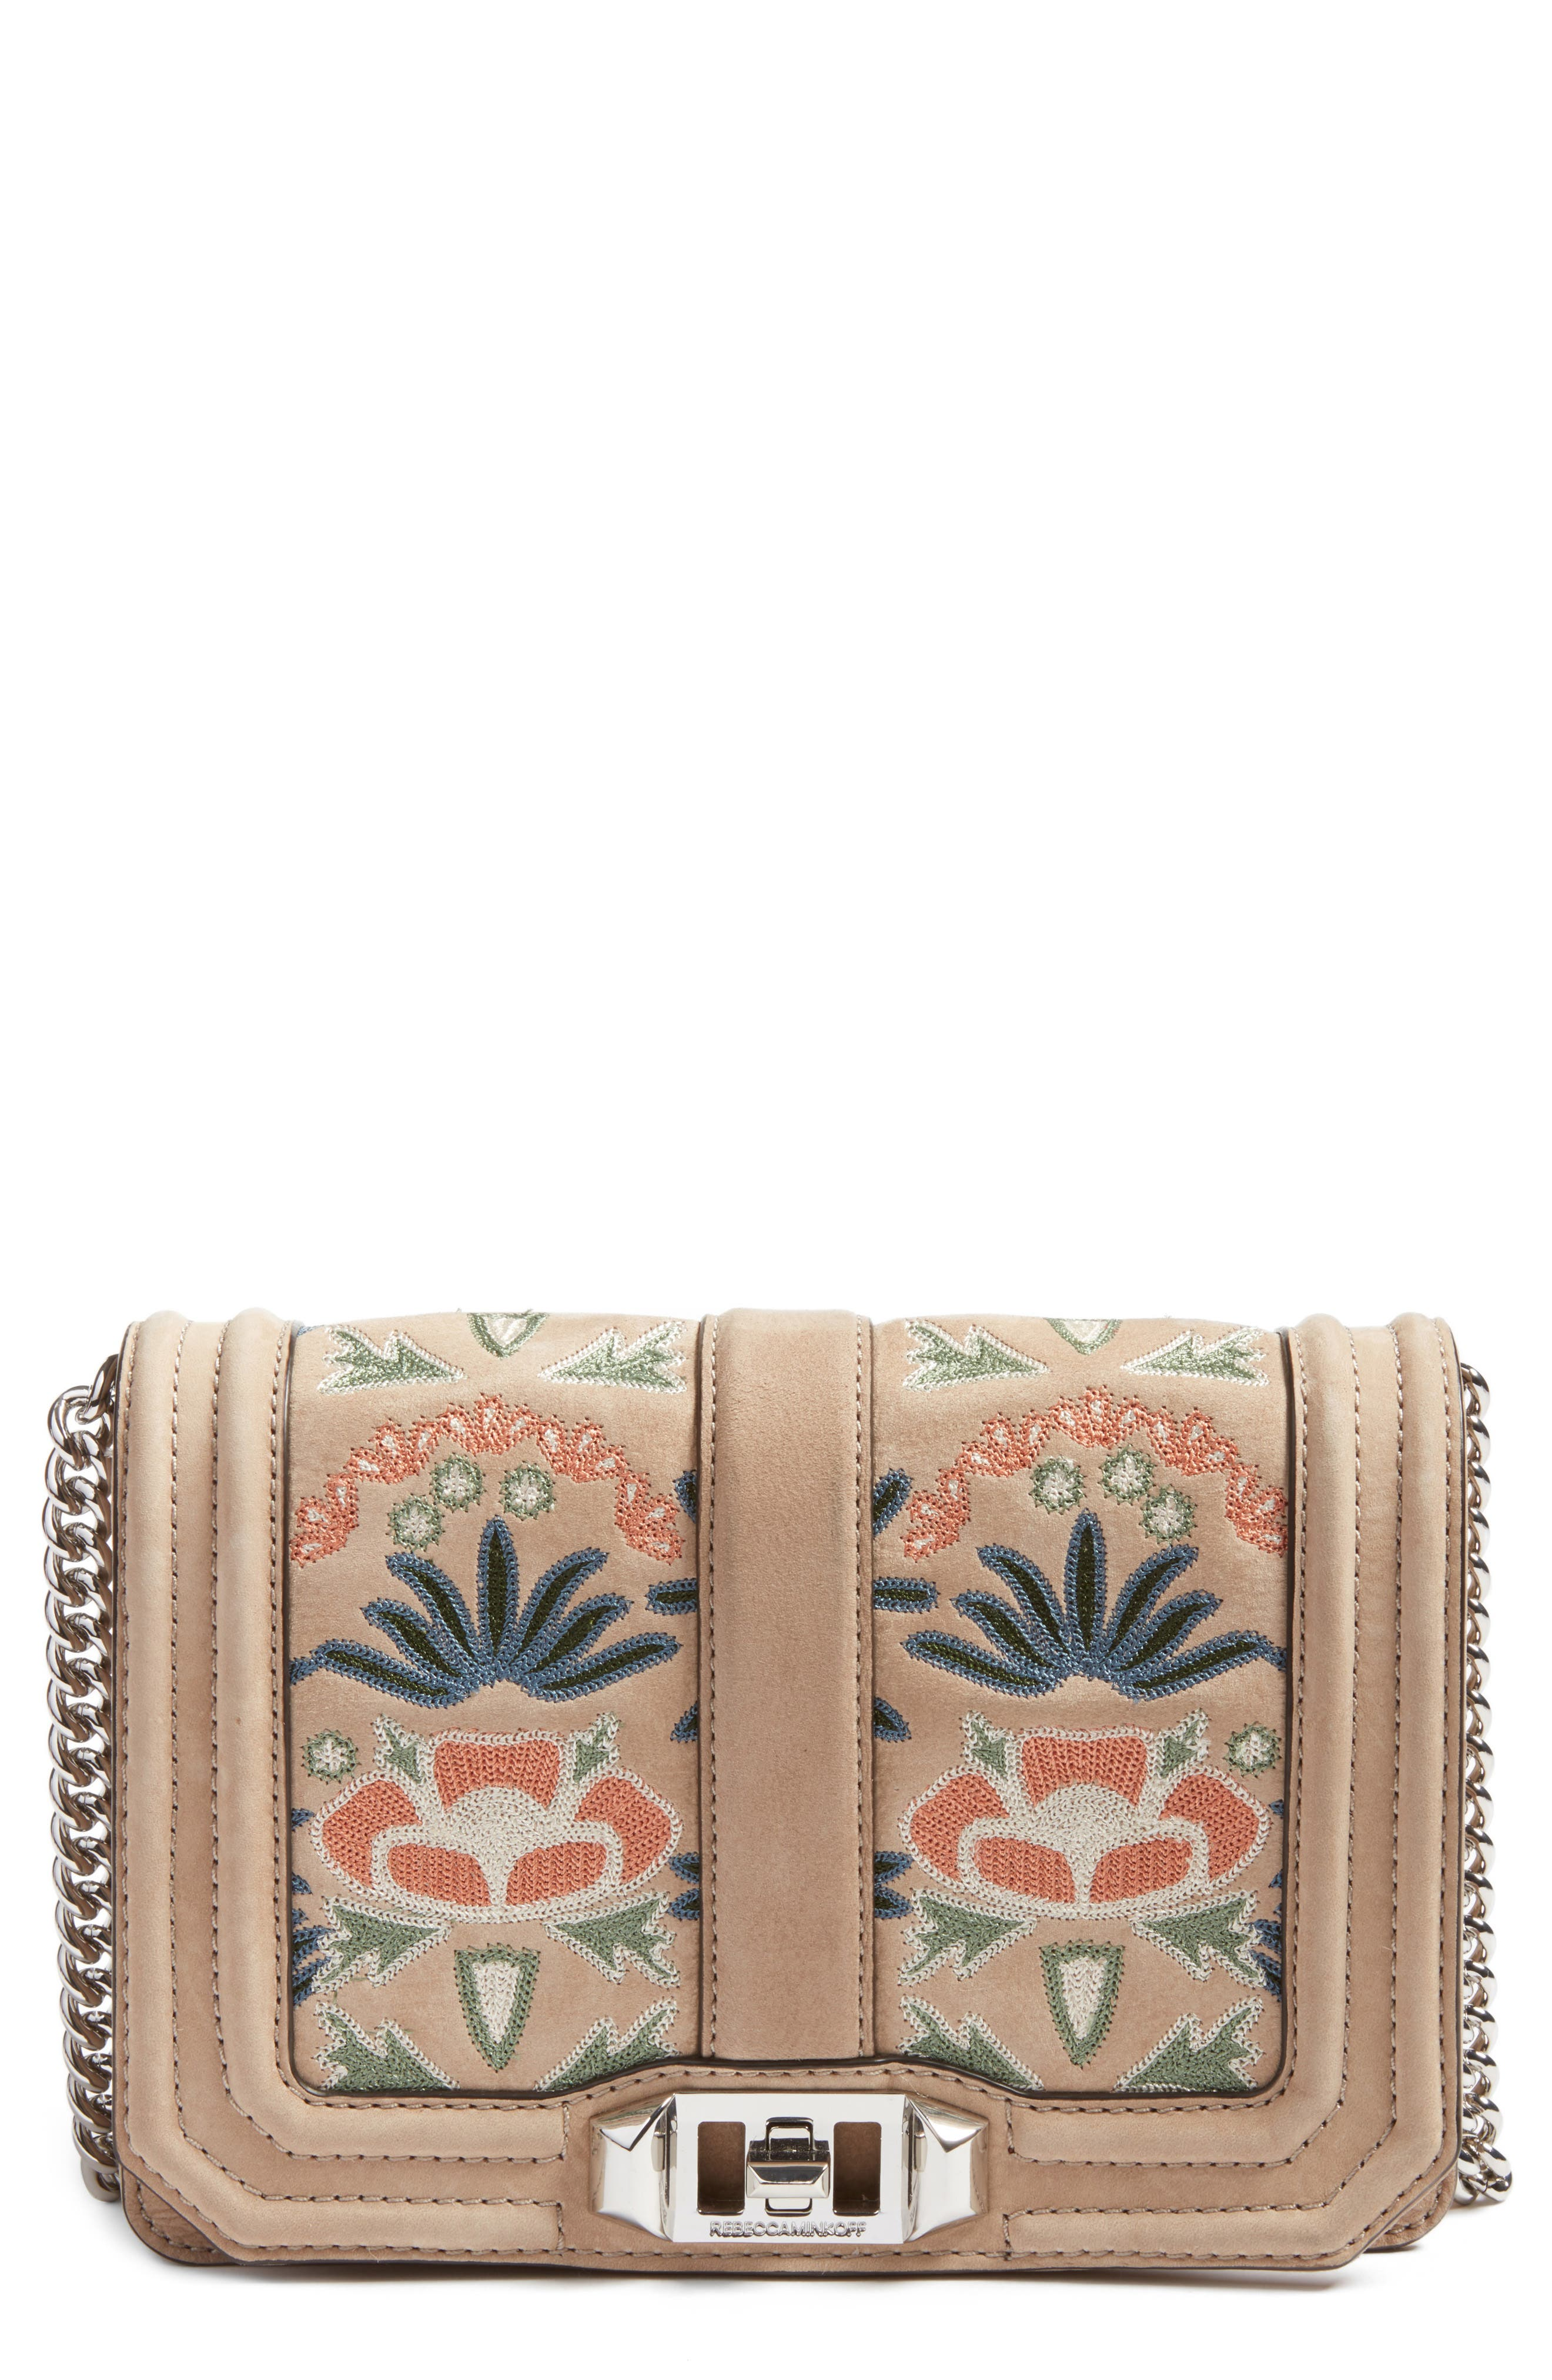 Alternate Image 1 Selected - Rebecca Minkoff Small Love Embroidered Nubuck Crossbody Bag (Nordstrom Exclusive)